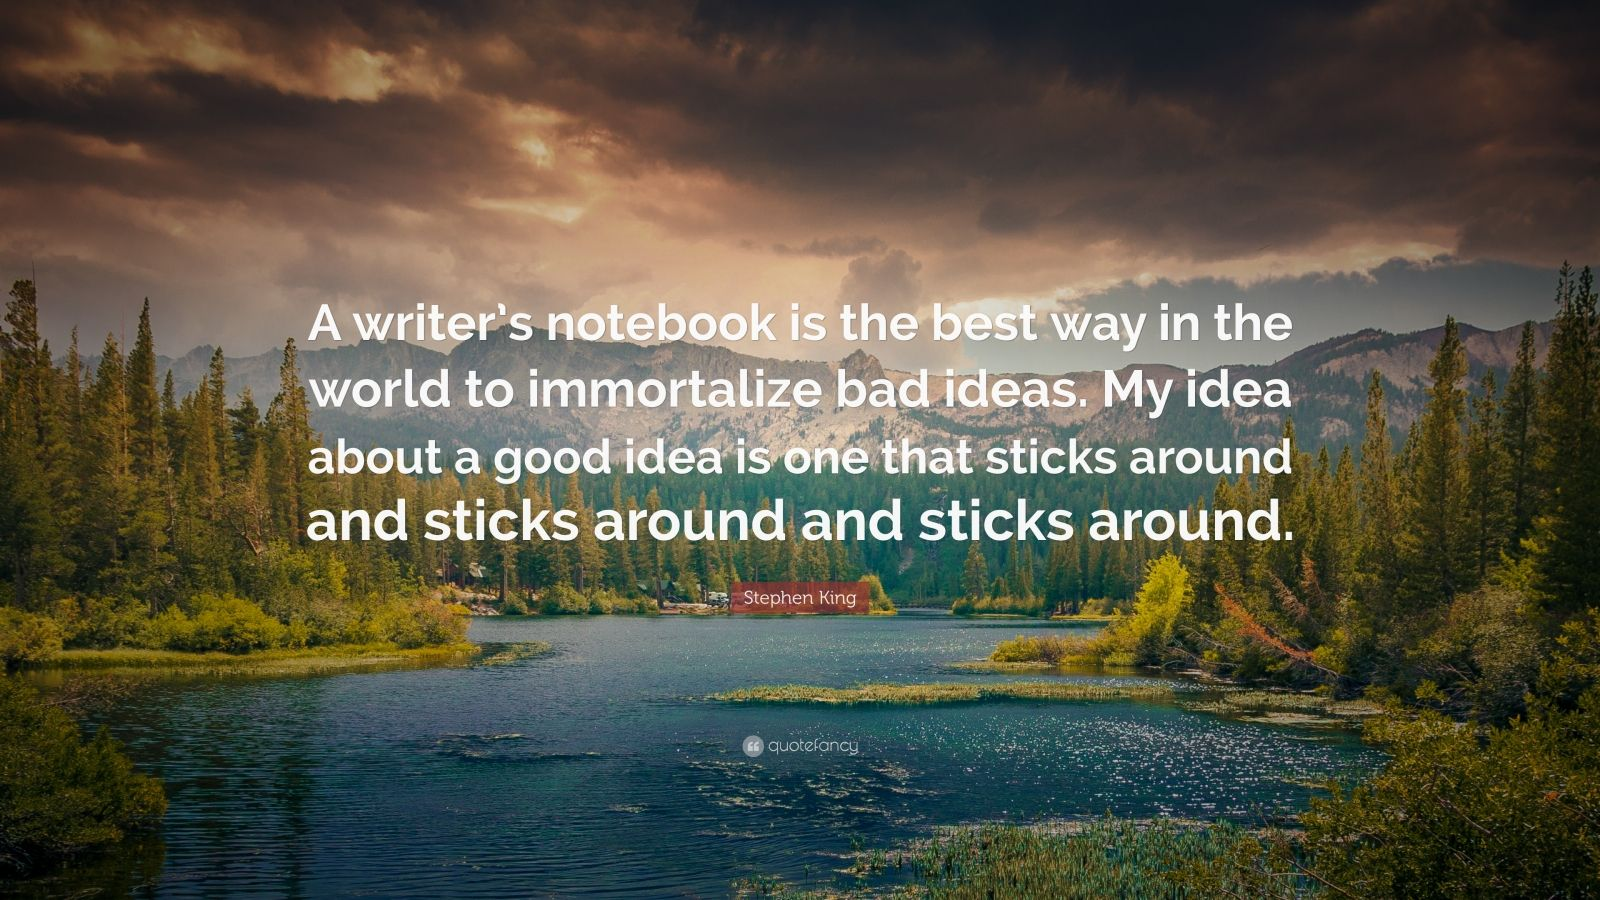 """Stephen King Quote: """"A writer's notebook is the best way in the world to immortalize bad ideas. My idea about a good idea is one that sticks around and sticks around and sticks around."""""""